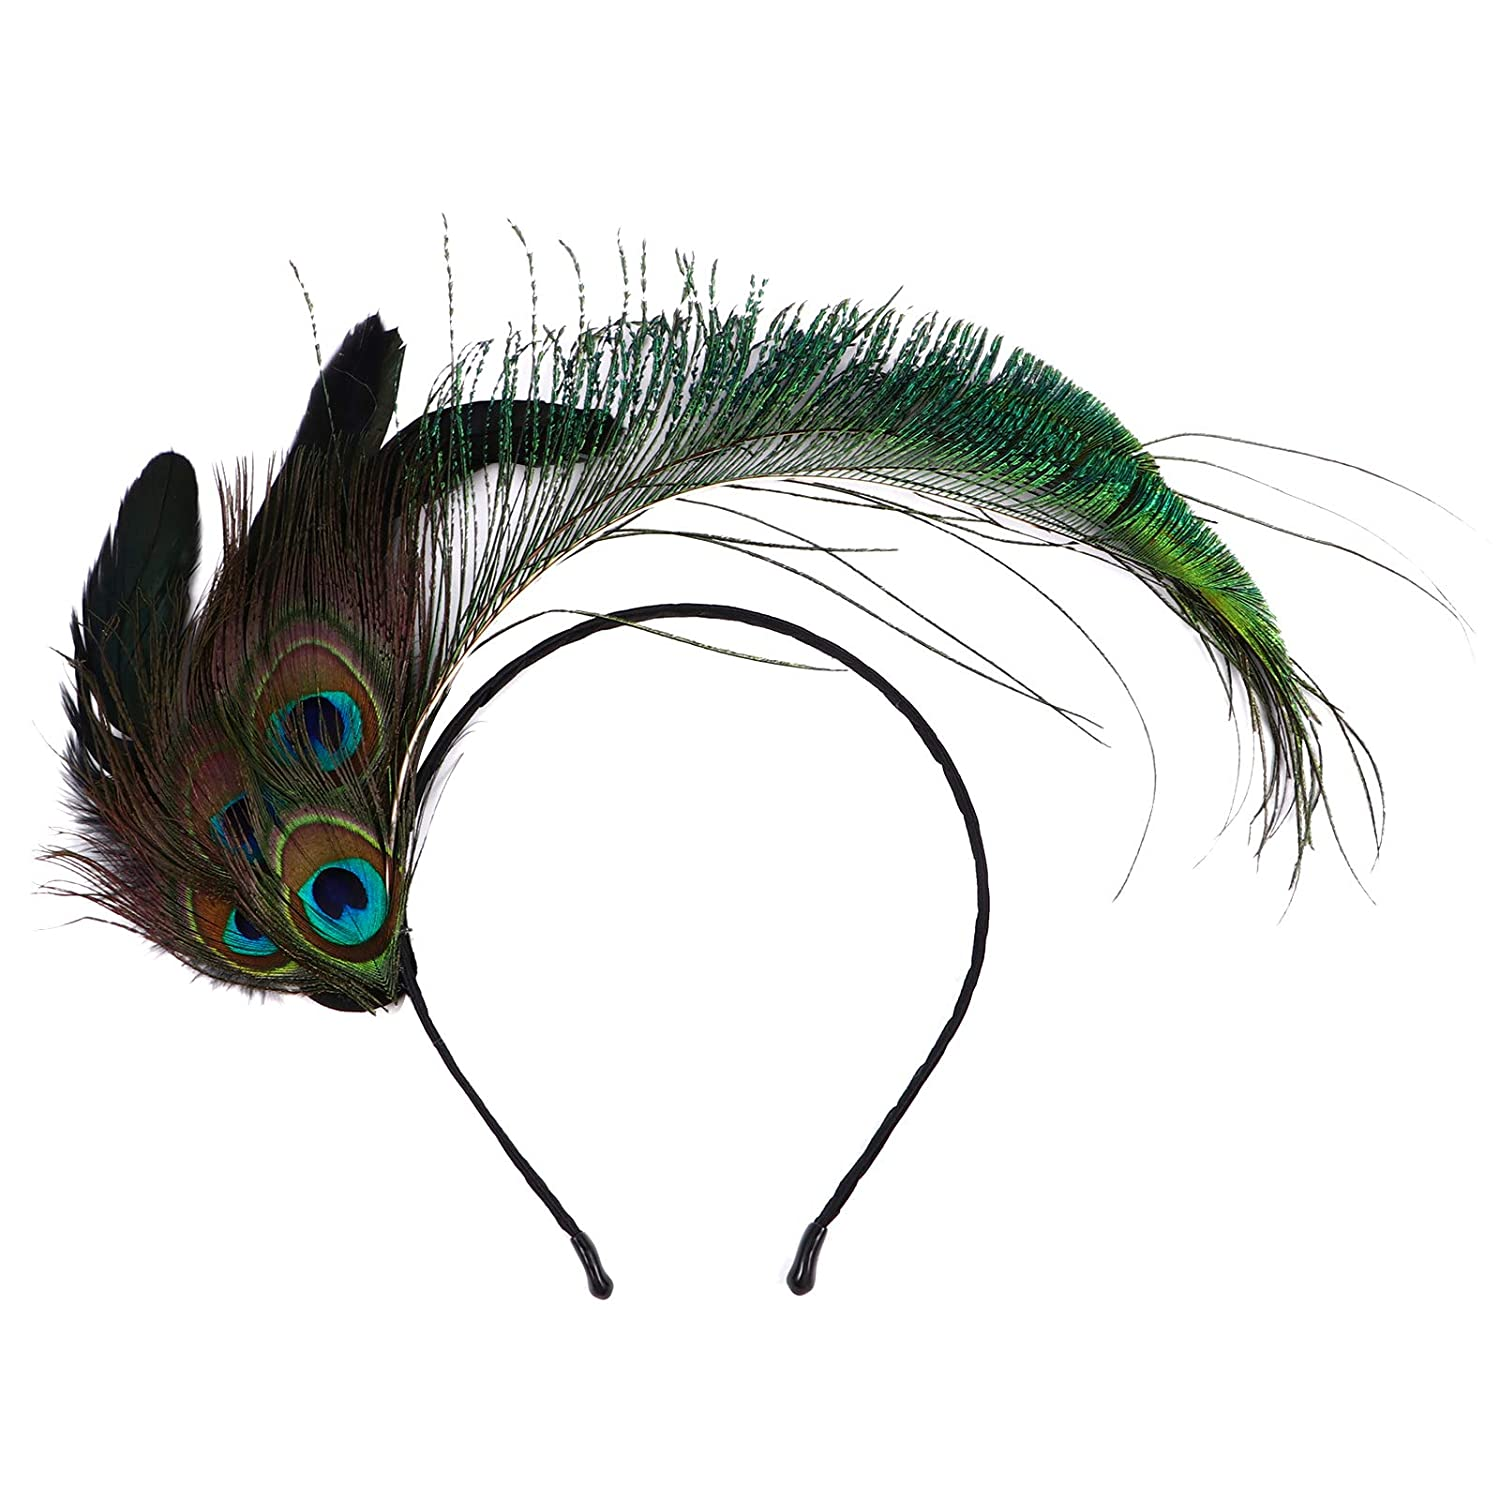 FRCOLOR Indian Headdress Feather Headband Feathers Fascinator Cosplay Head Prop for Women Girls